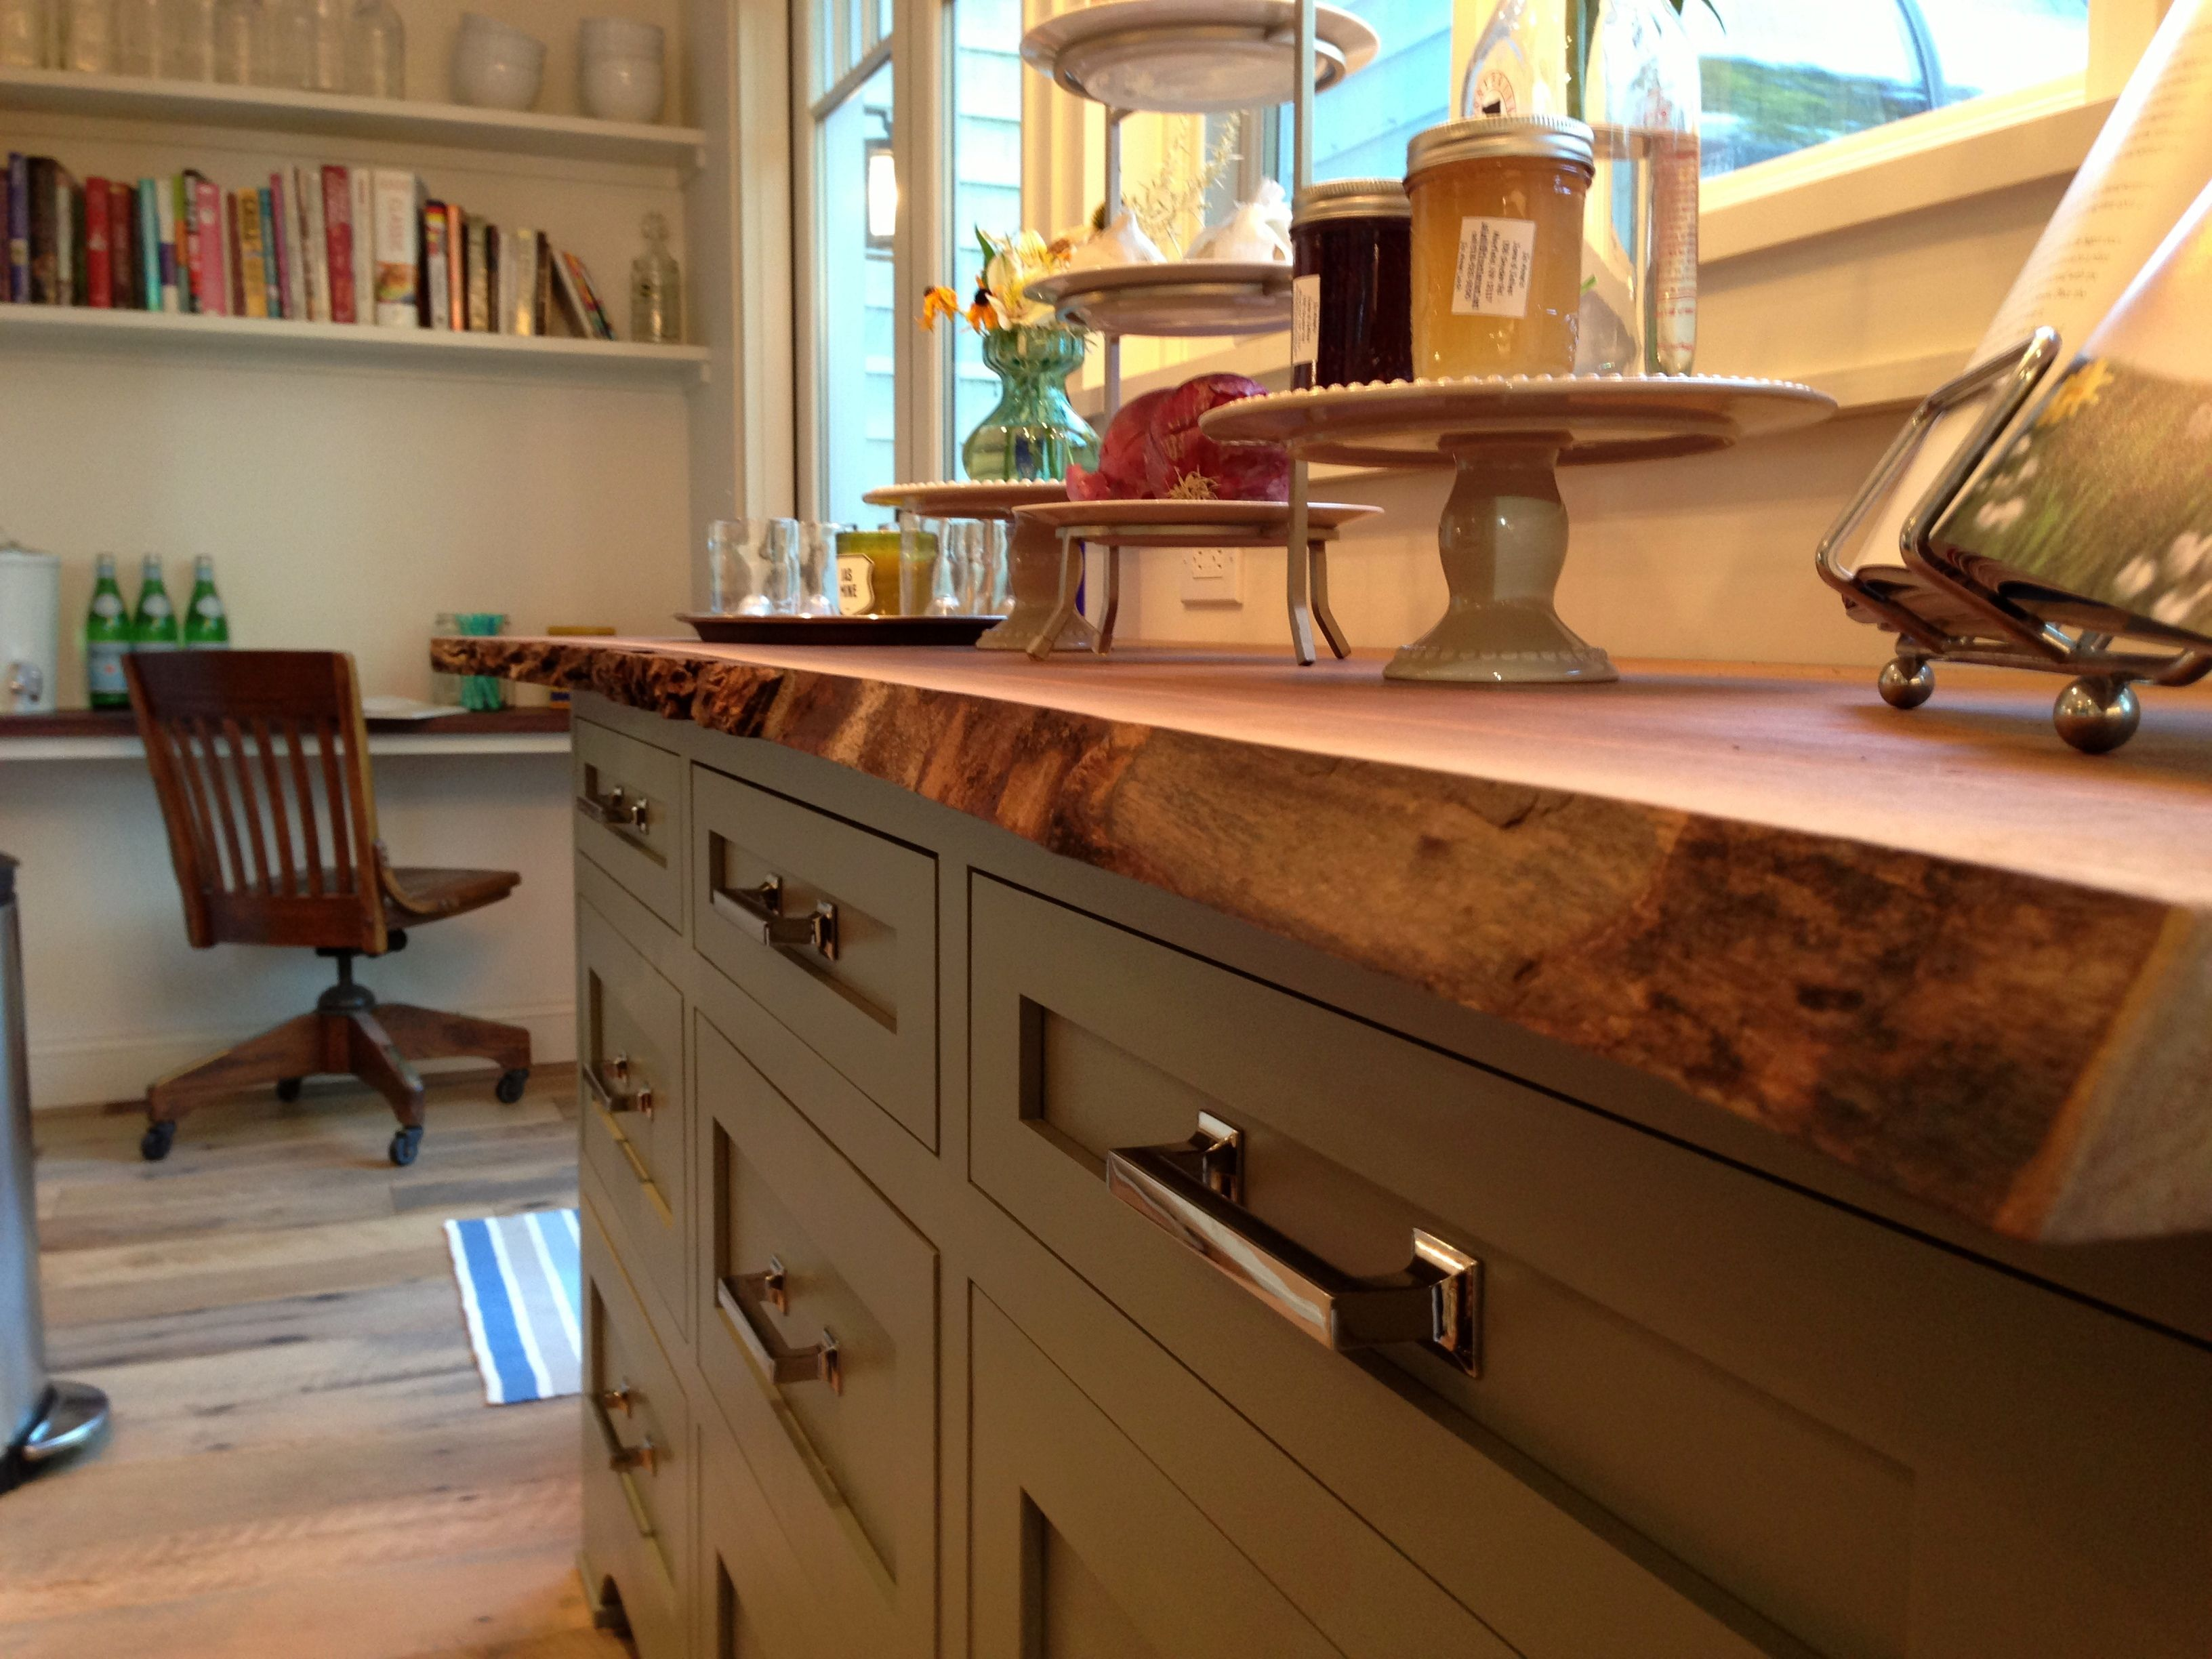 Lowes Walnut Kitchen Cabinets Image Result For Live Edge Countertops Kitchen Design